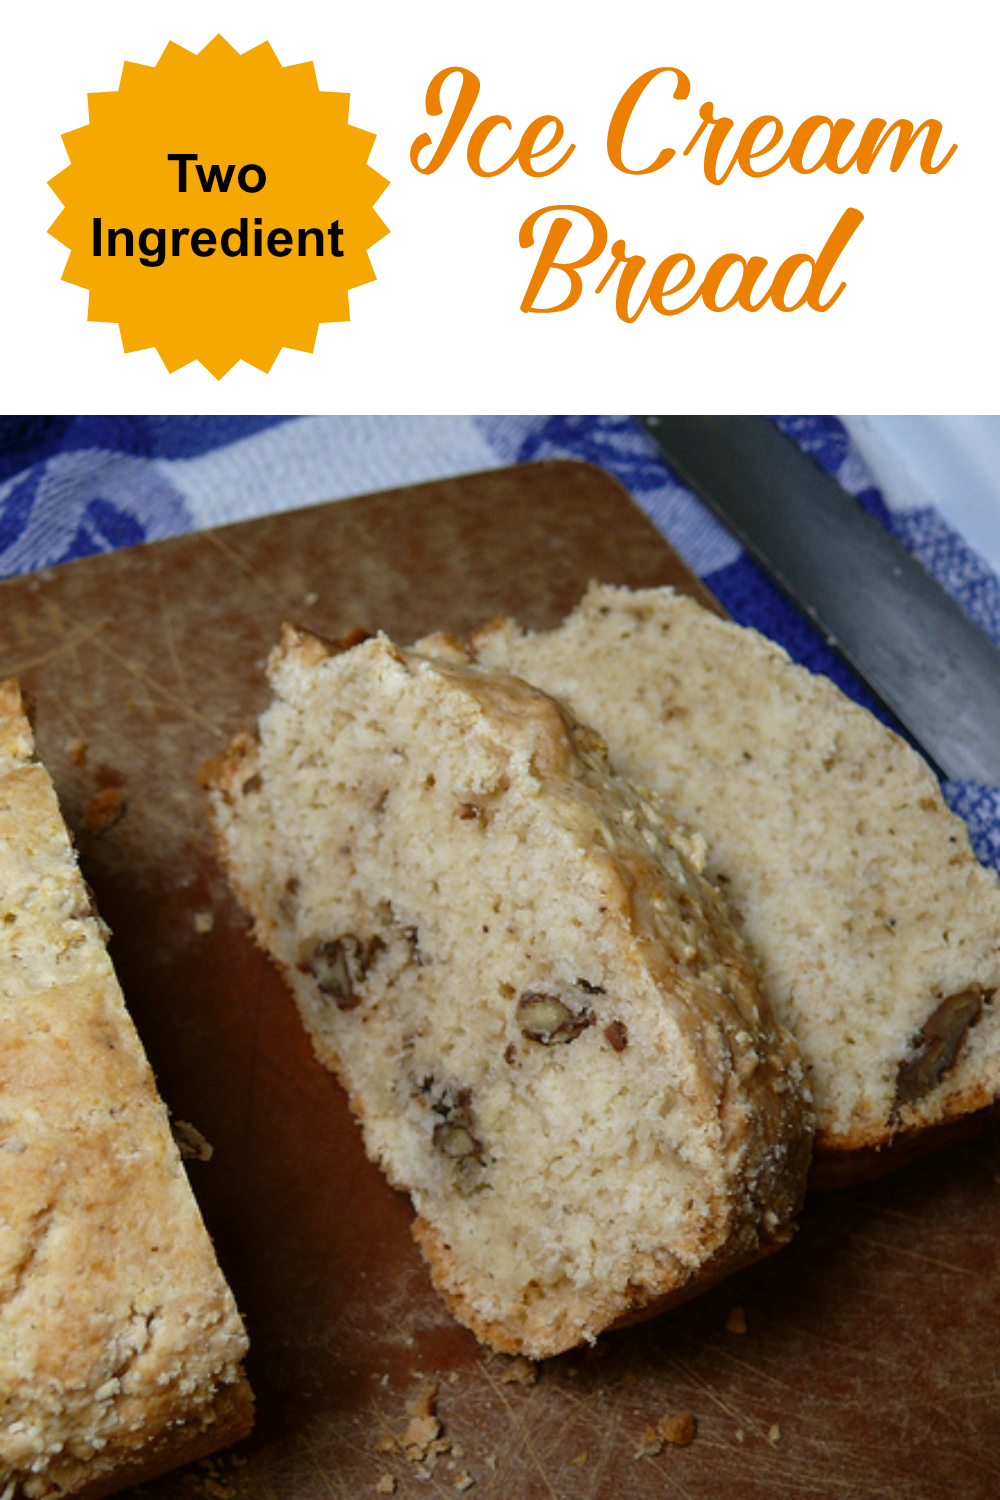 two ingredients Ice Cream Bread Recipe